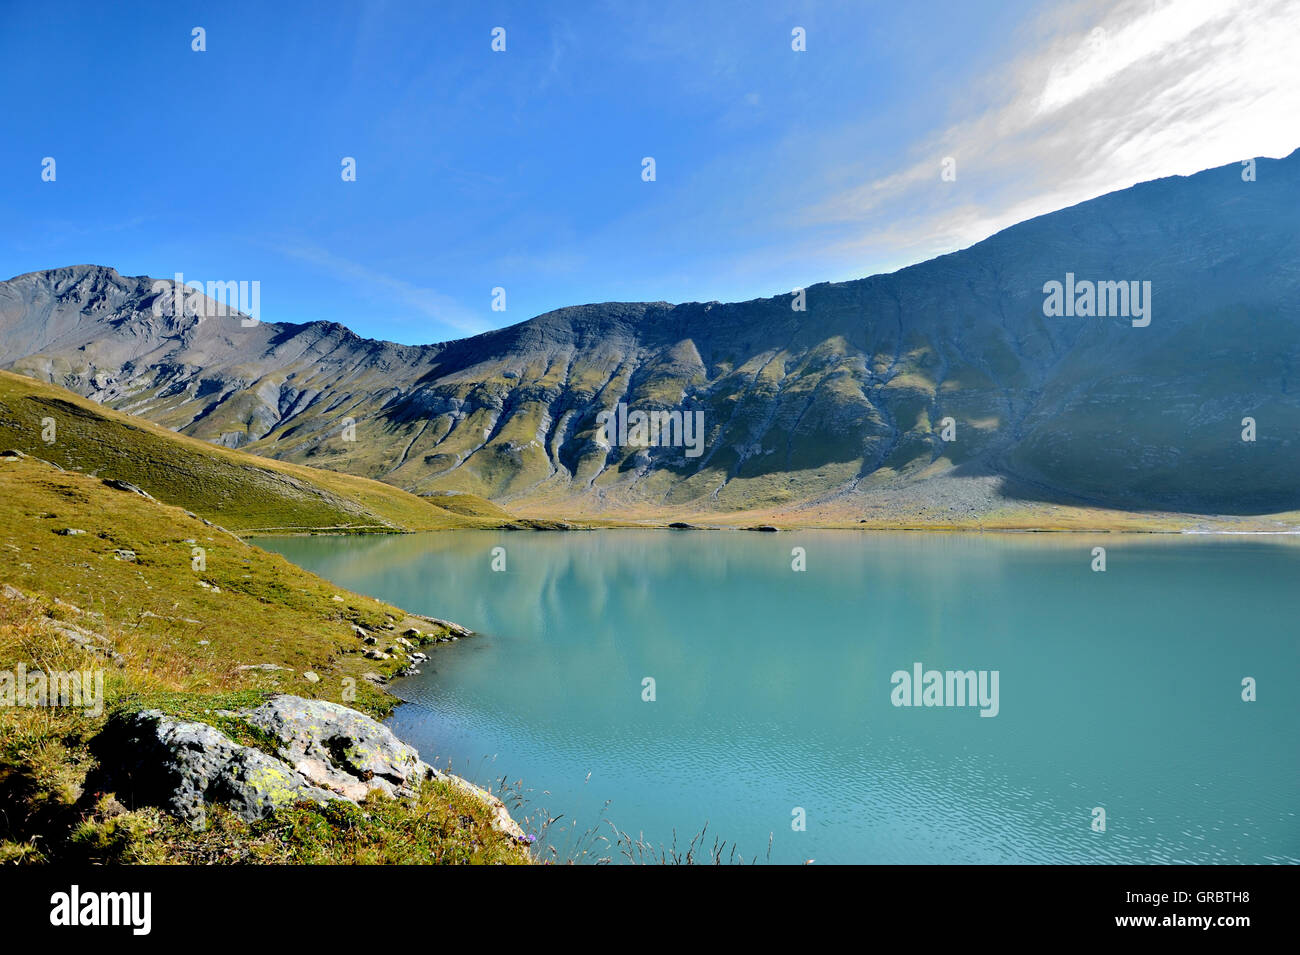 Lac Goléon Appears In Deep Turquoise Colour With The First Sunlight In Early Morning, French Alps, France - Stock Image